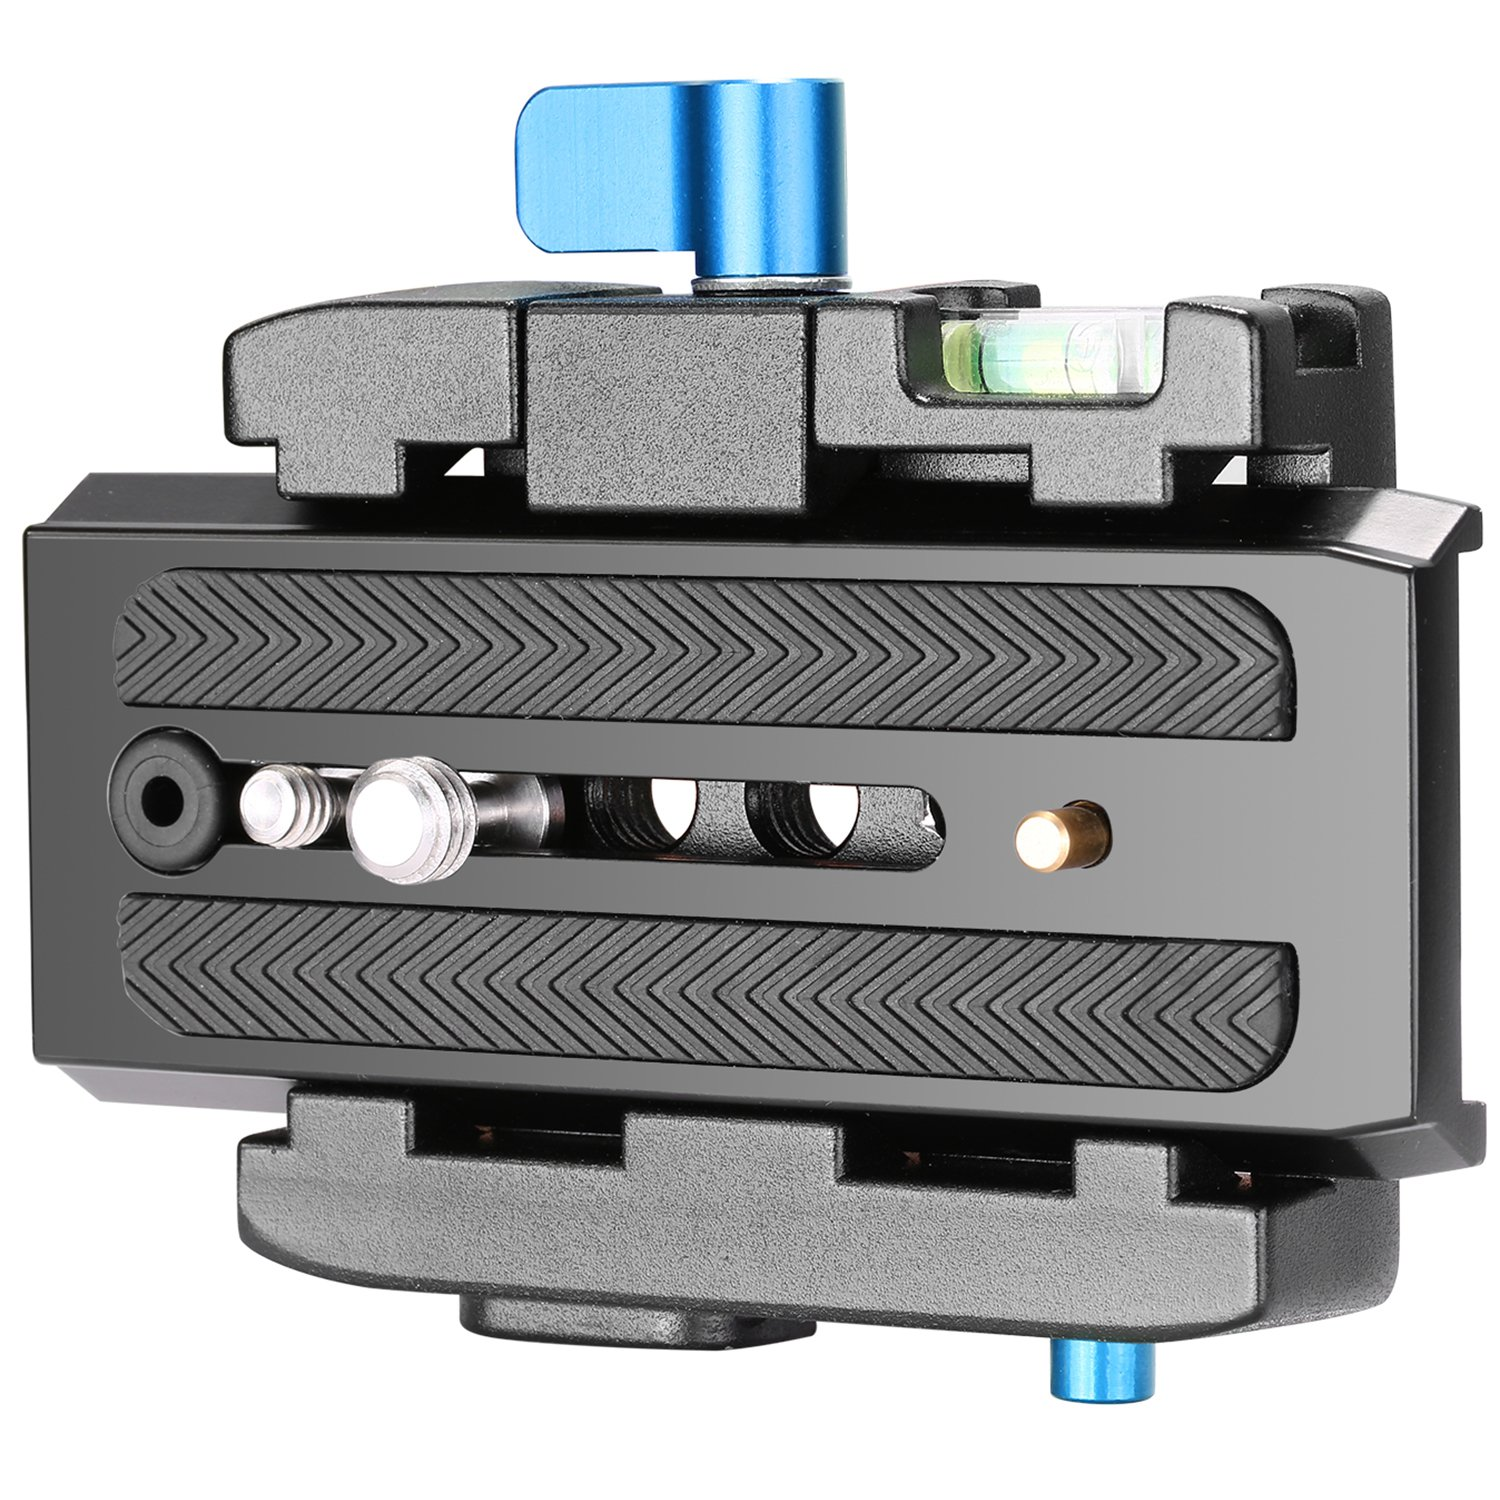 Neewer Adapter /& Quick Release Plate Professional Aluminum Alloy with 1//4/&3//8 Screws for Digital SLR Camcorders Manfrotto 501HDV 503HDV 701HDV 577//519//561//Q5